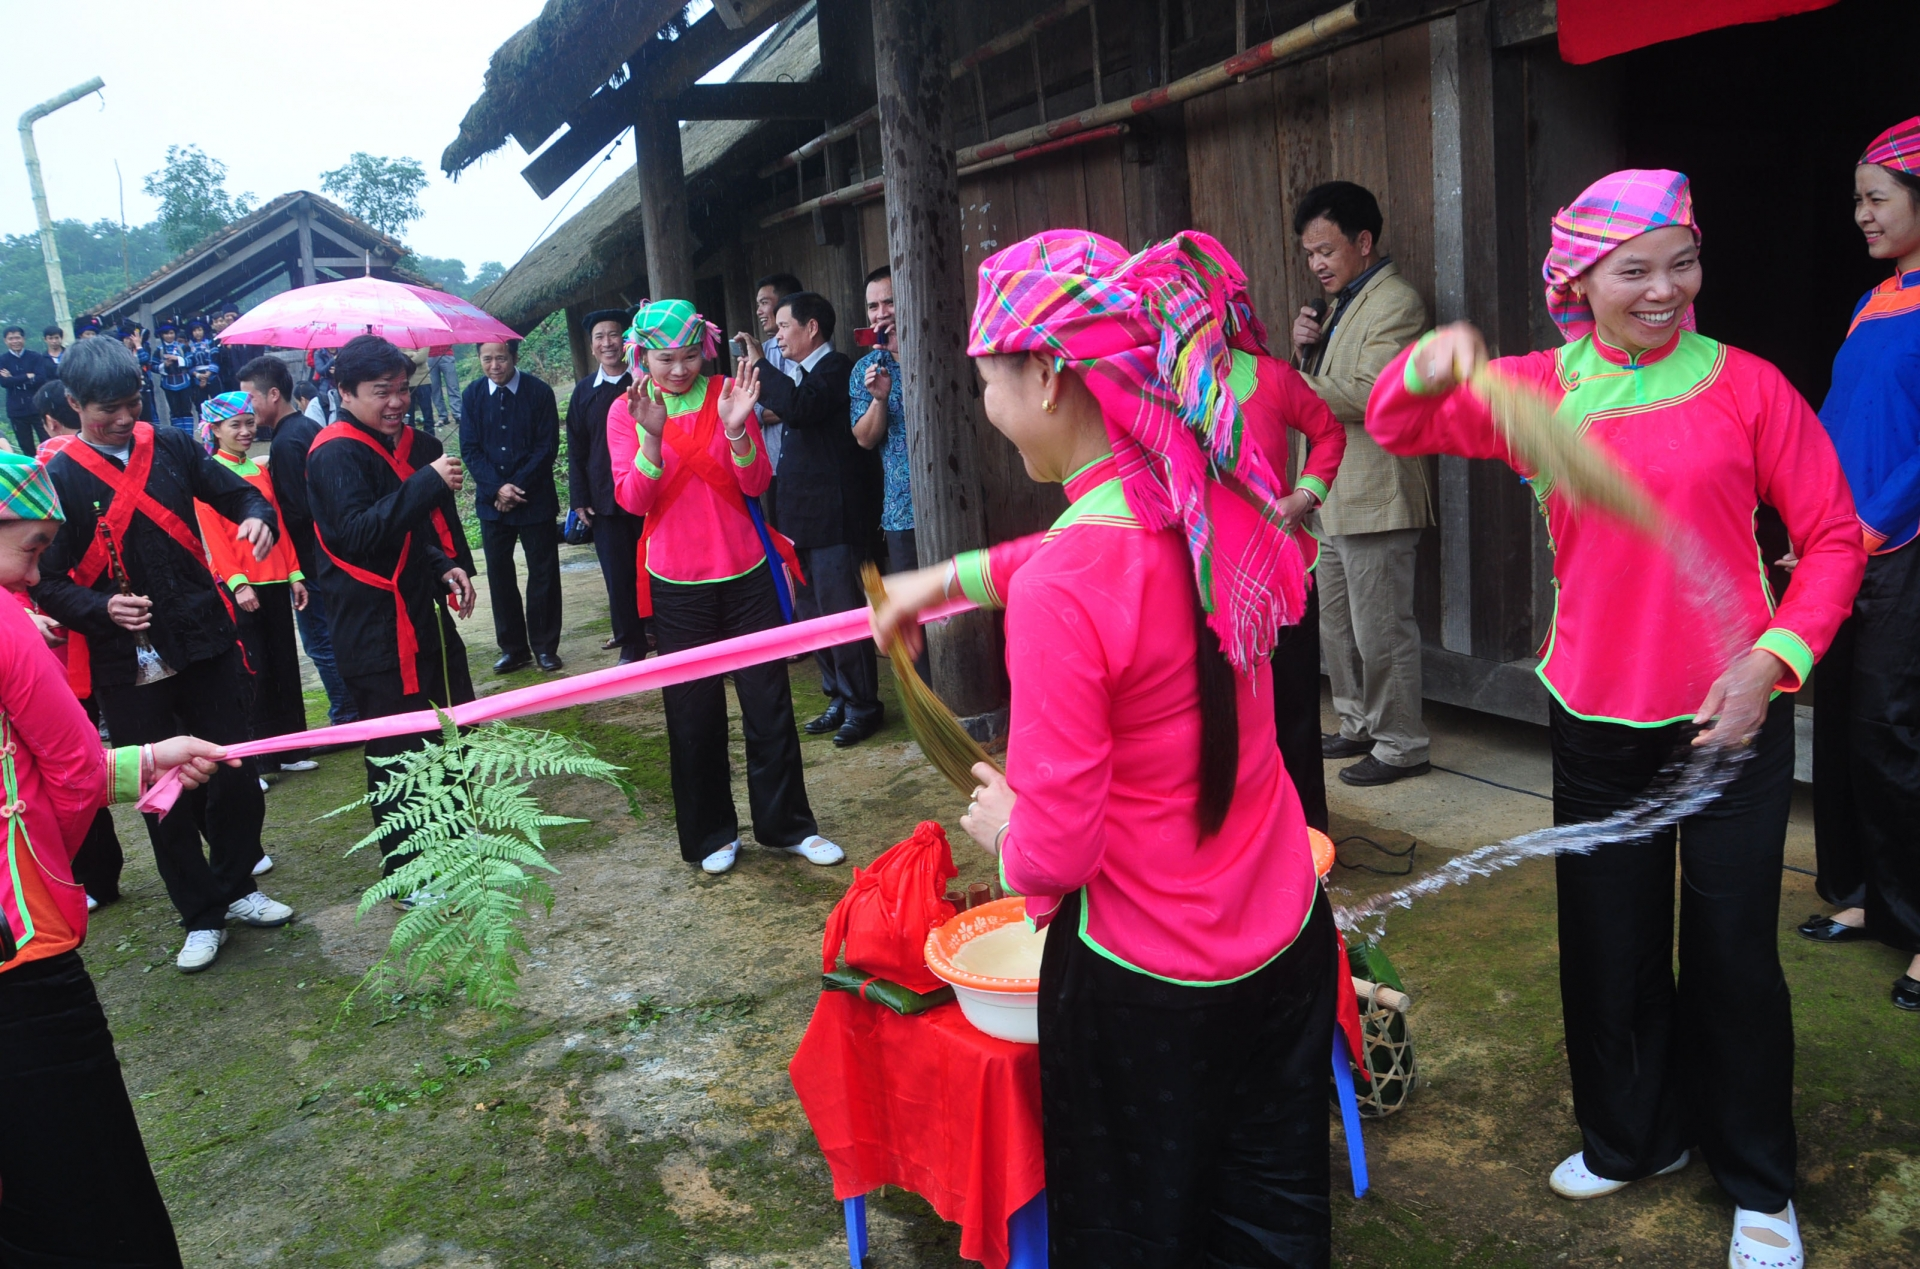 thorns and pink ribbons the unique wedding ceremony of the giay